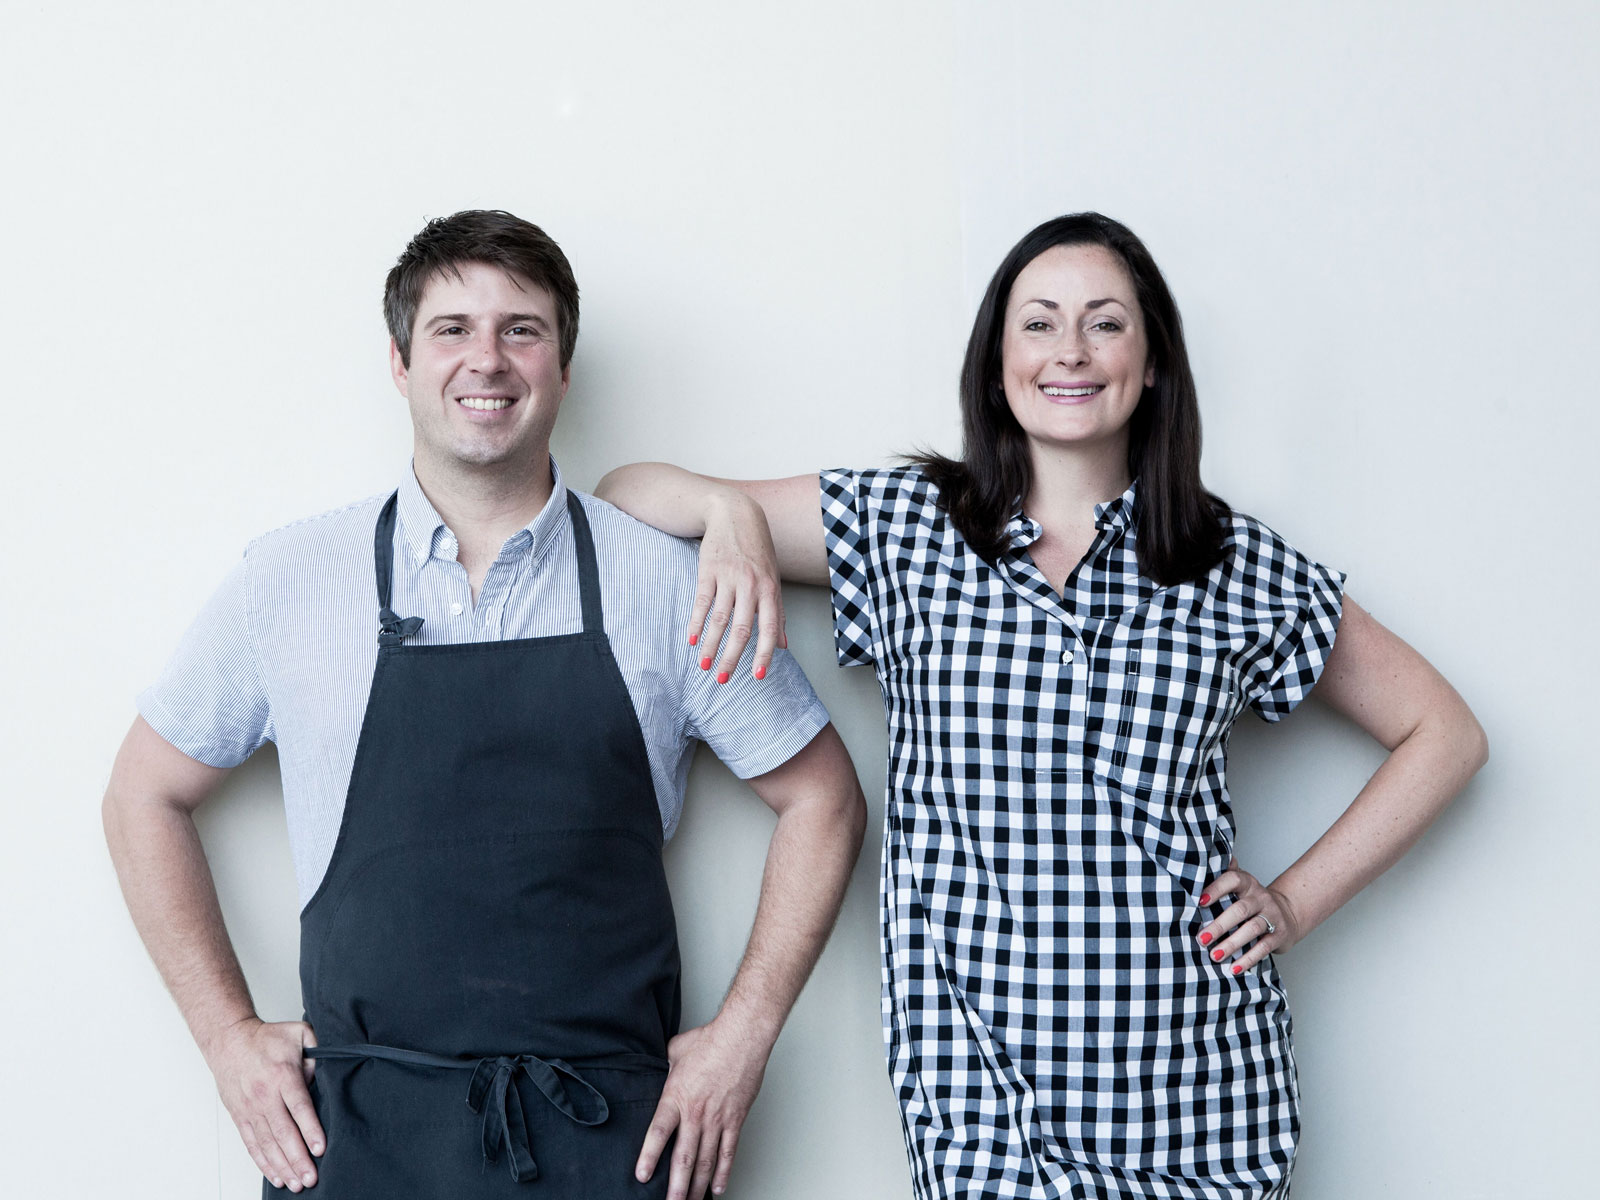 Michael and Tara Gallina to Take Over St. Louis' Beloved Winslow's Home Restaurant